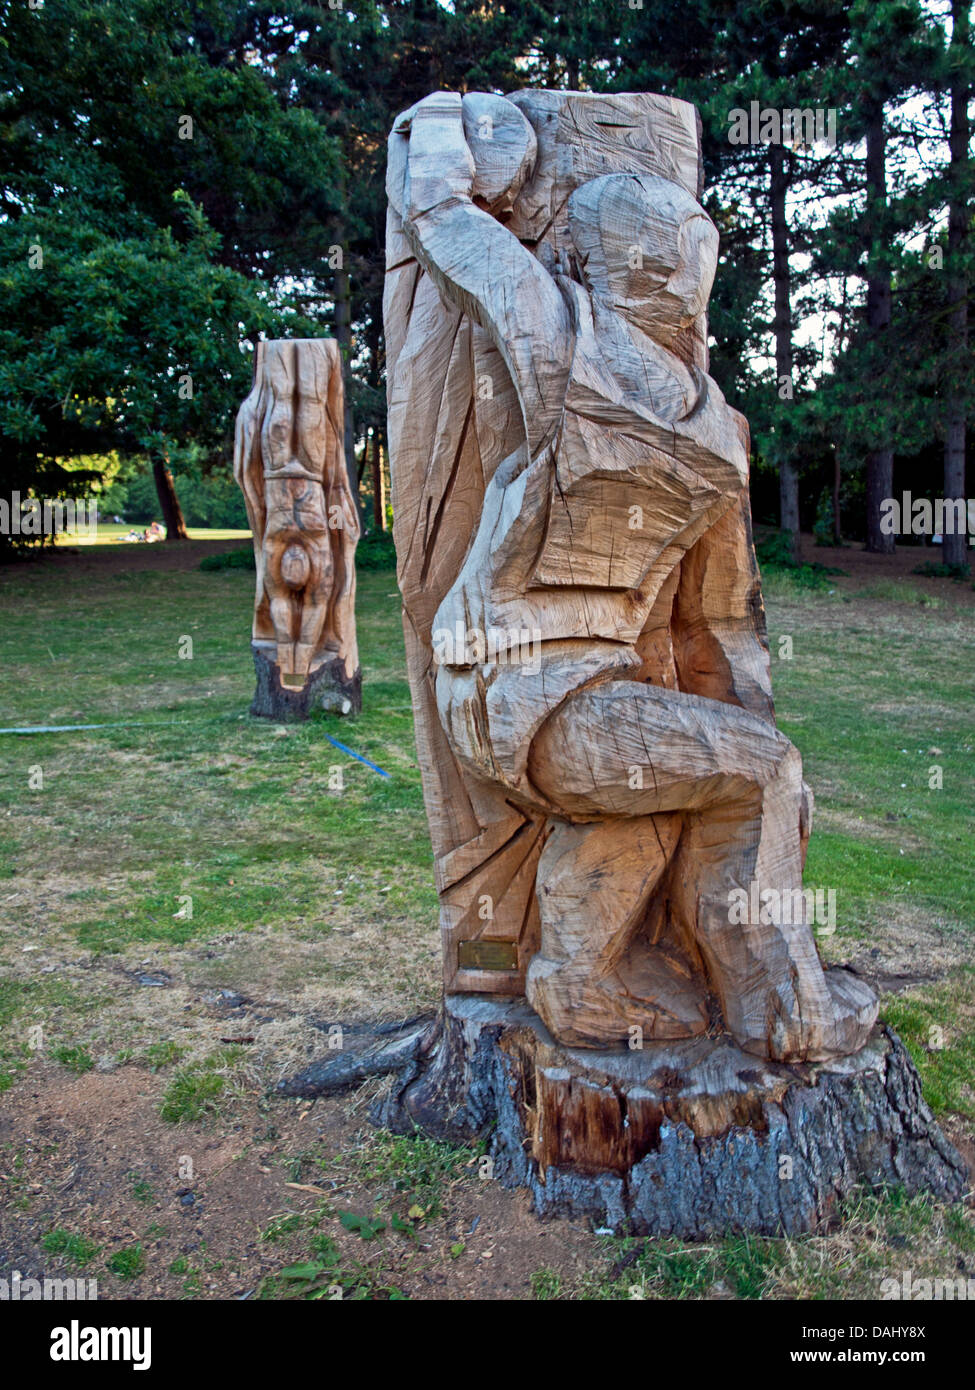 Wooden carving in tree stump stock photos